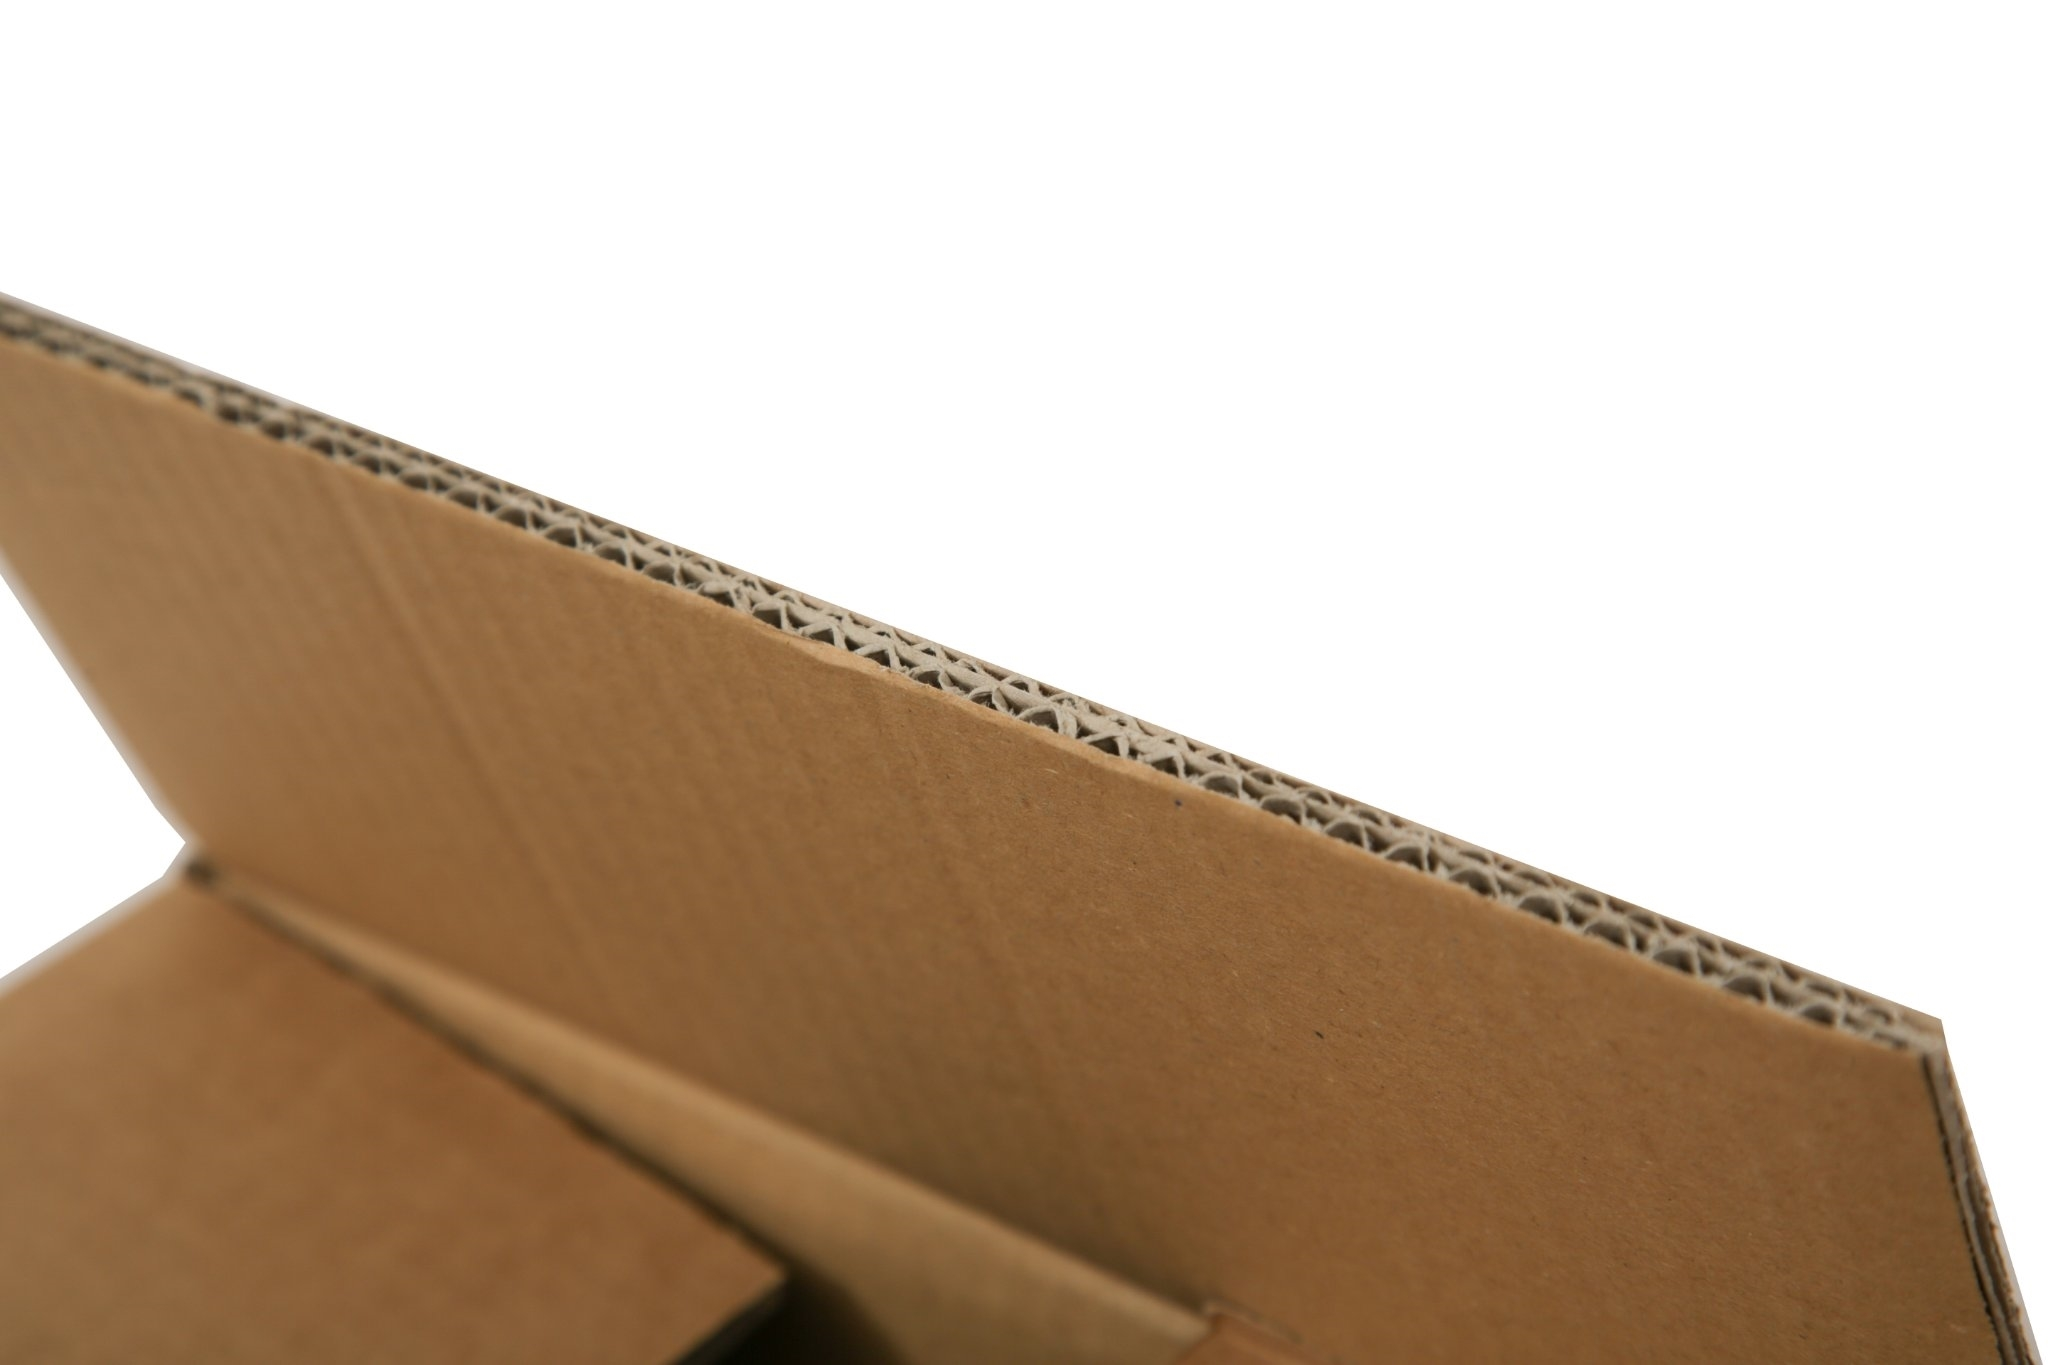 435 x 155 x 150mm Double Wall Cardboard Boxes - 5